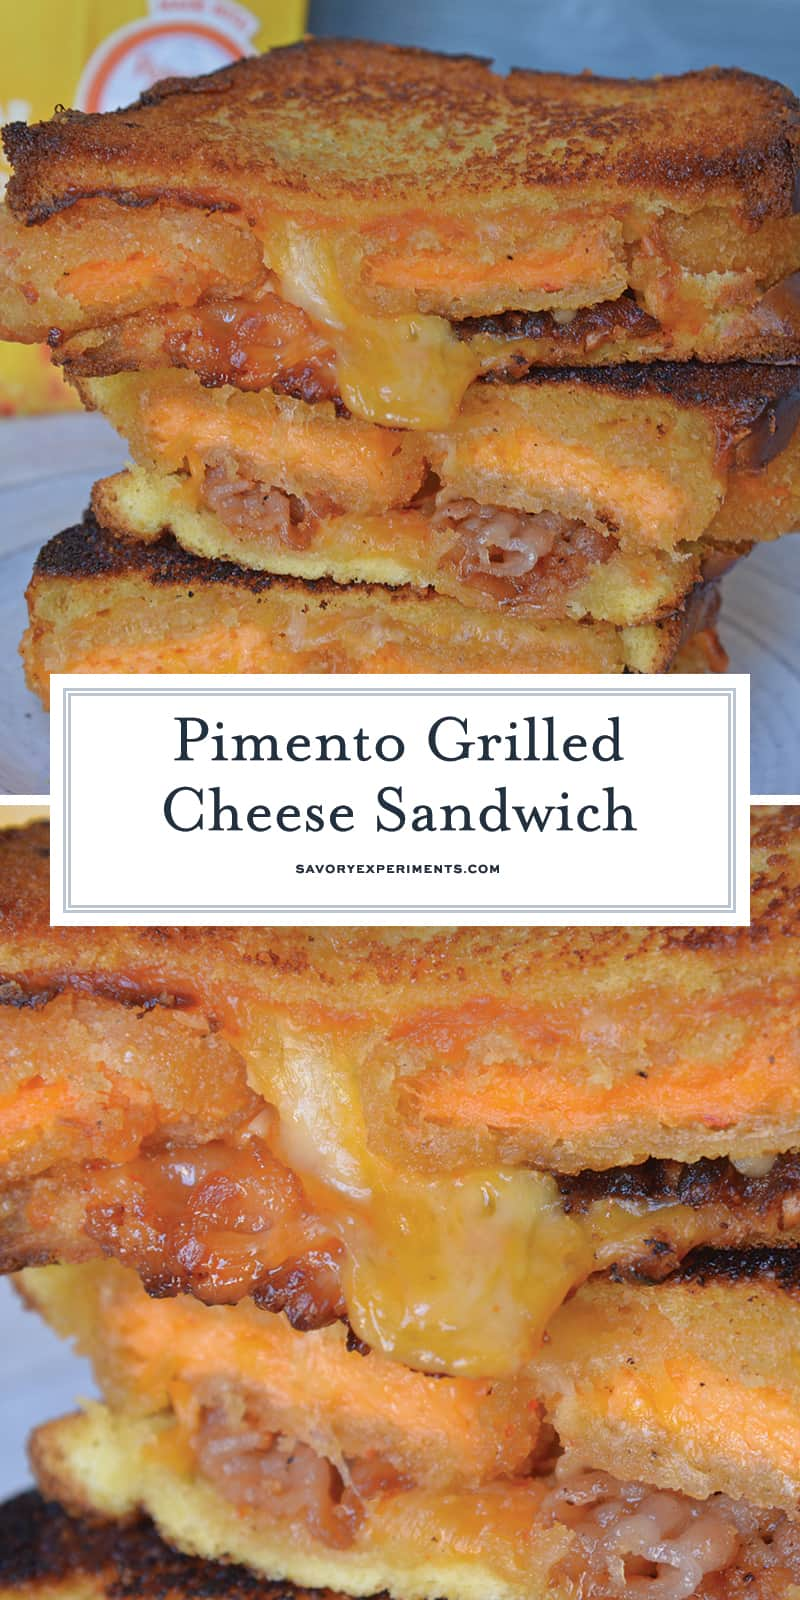 Pimento Grilled Cheese Sandwiches are the ultimate grilled cheese recipe. Zesty pimento cheese bites with bacon, gouda, cheddar and red pepper jelly on thick cut potato bread. #grilledcheesesandwichrecipes #pimentocheese www.savoryexperiments.com